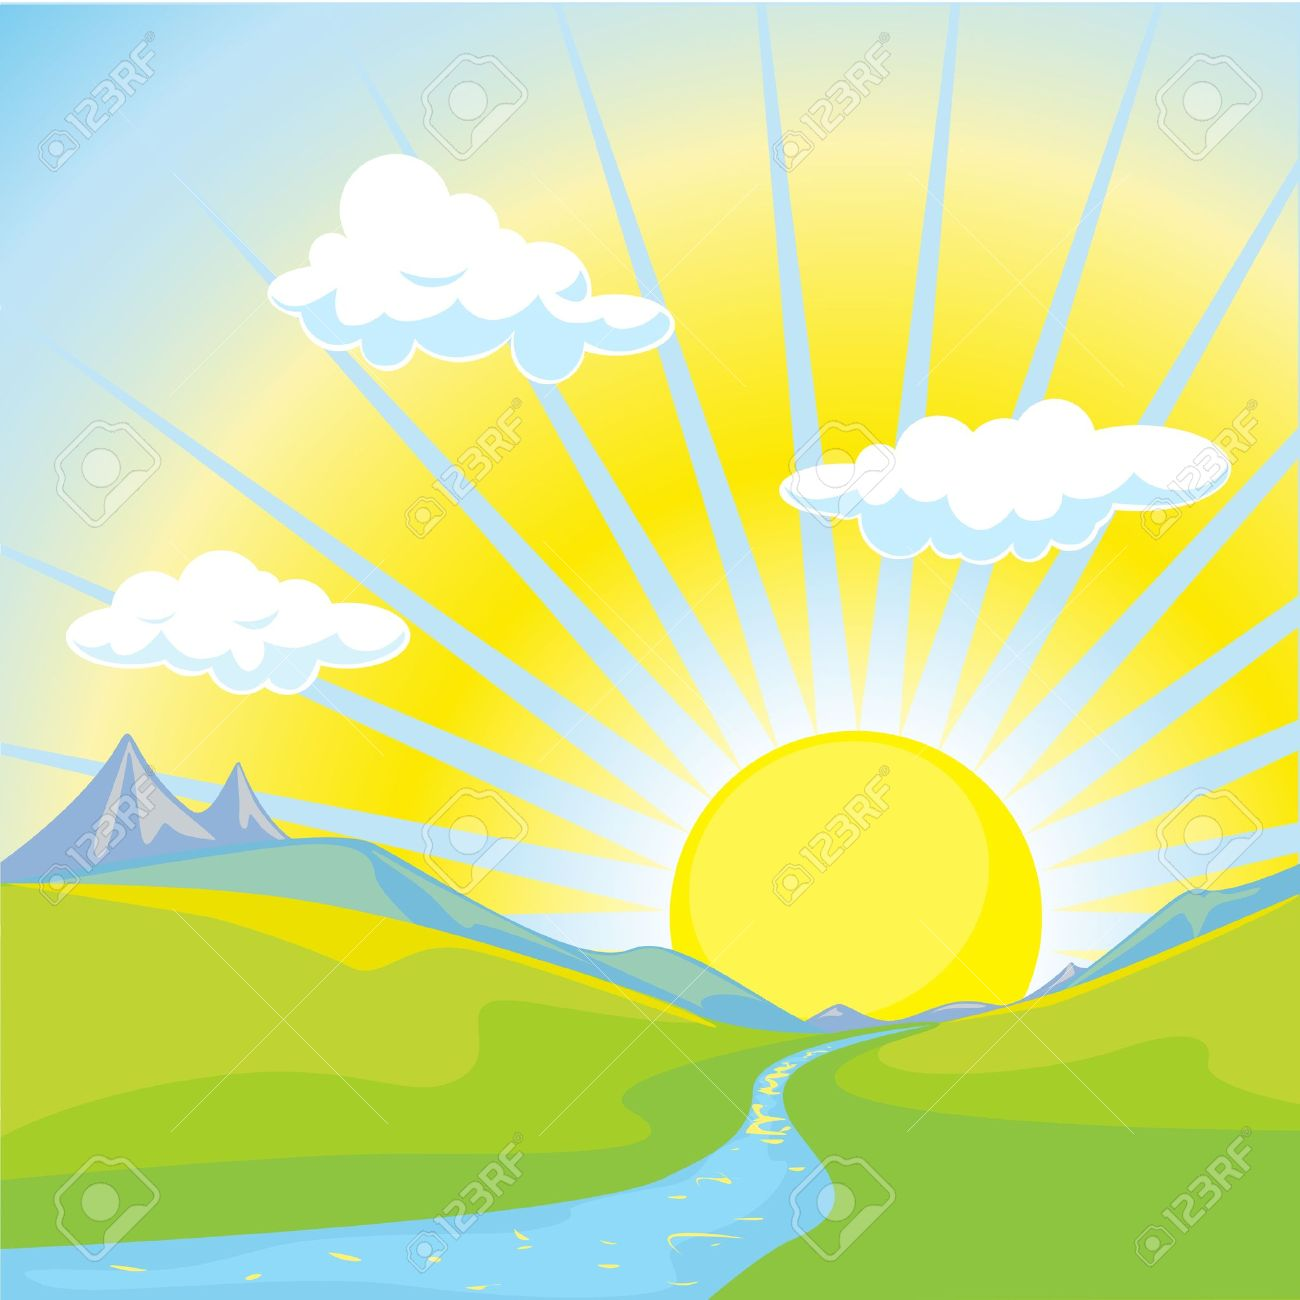 Hills clipart sunrise over. Free dawn cliparts download